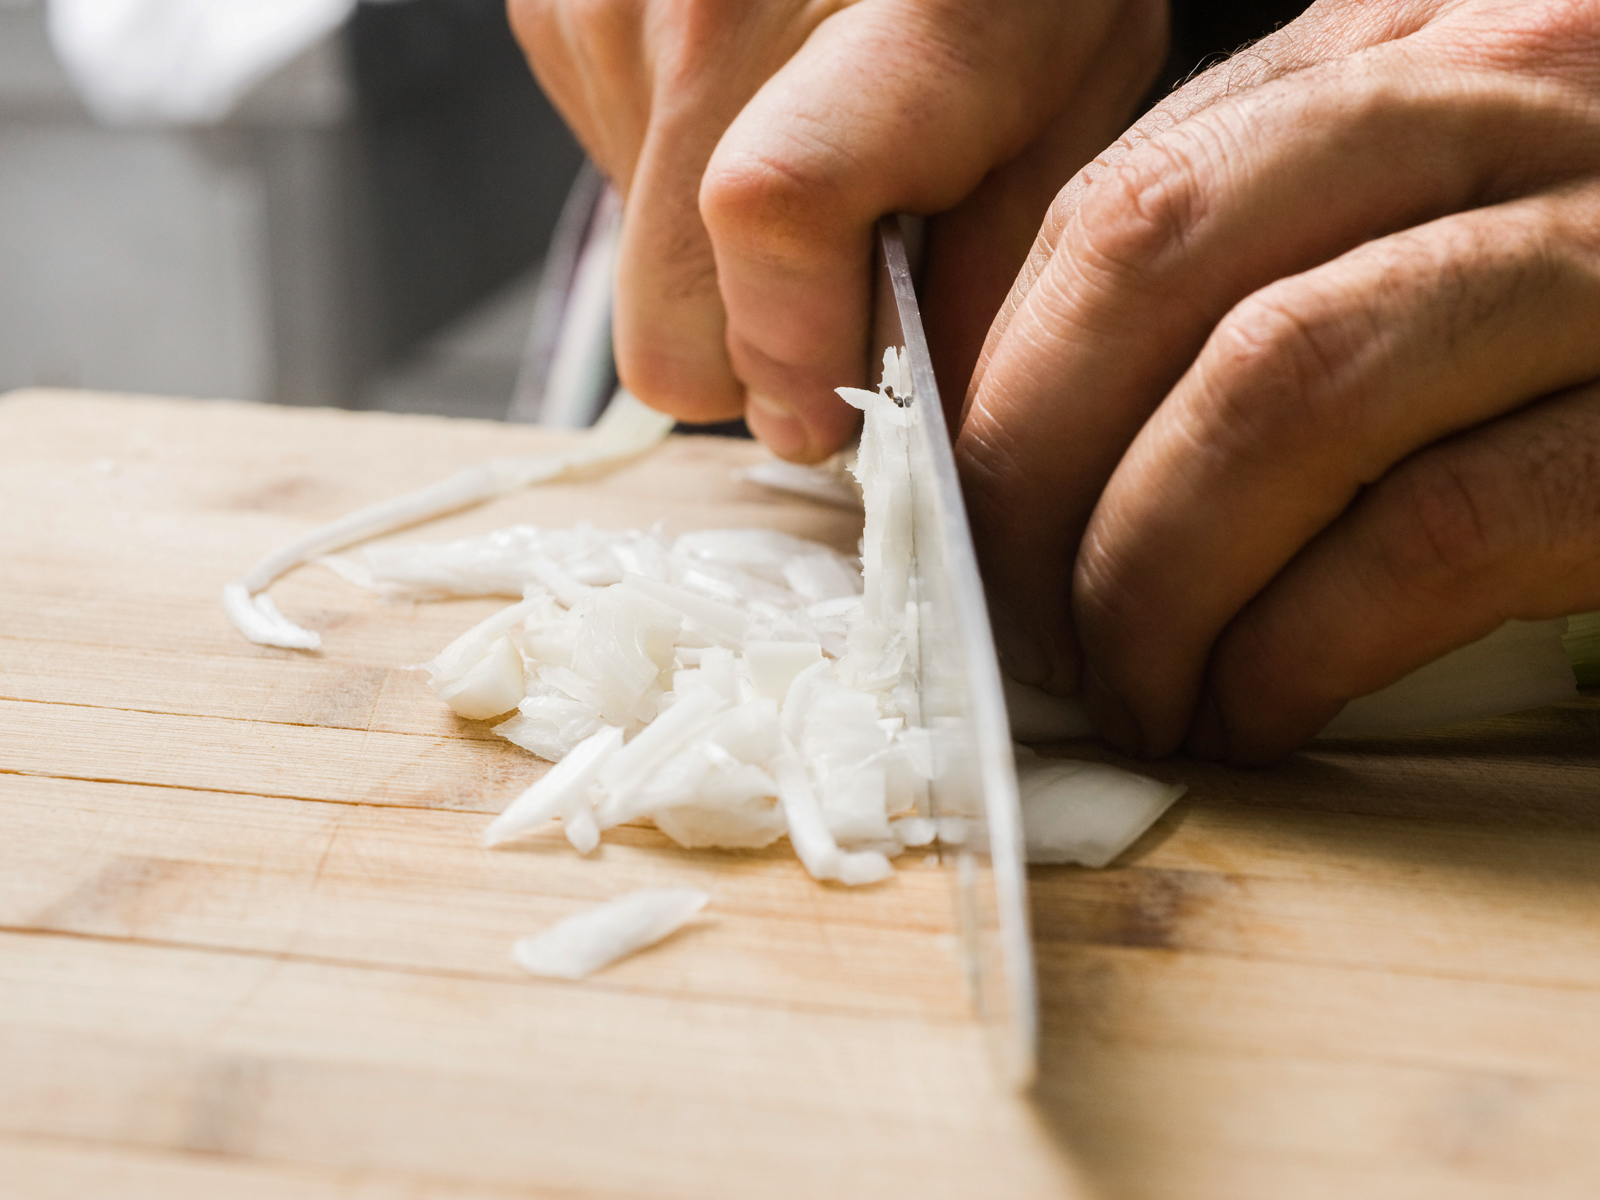 Best Way to Cut An Onion